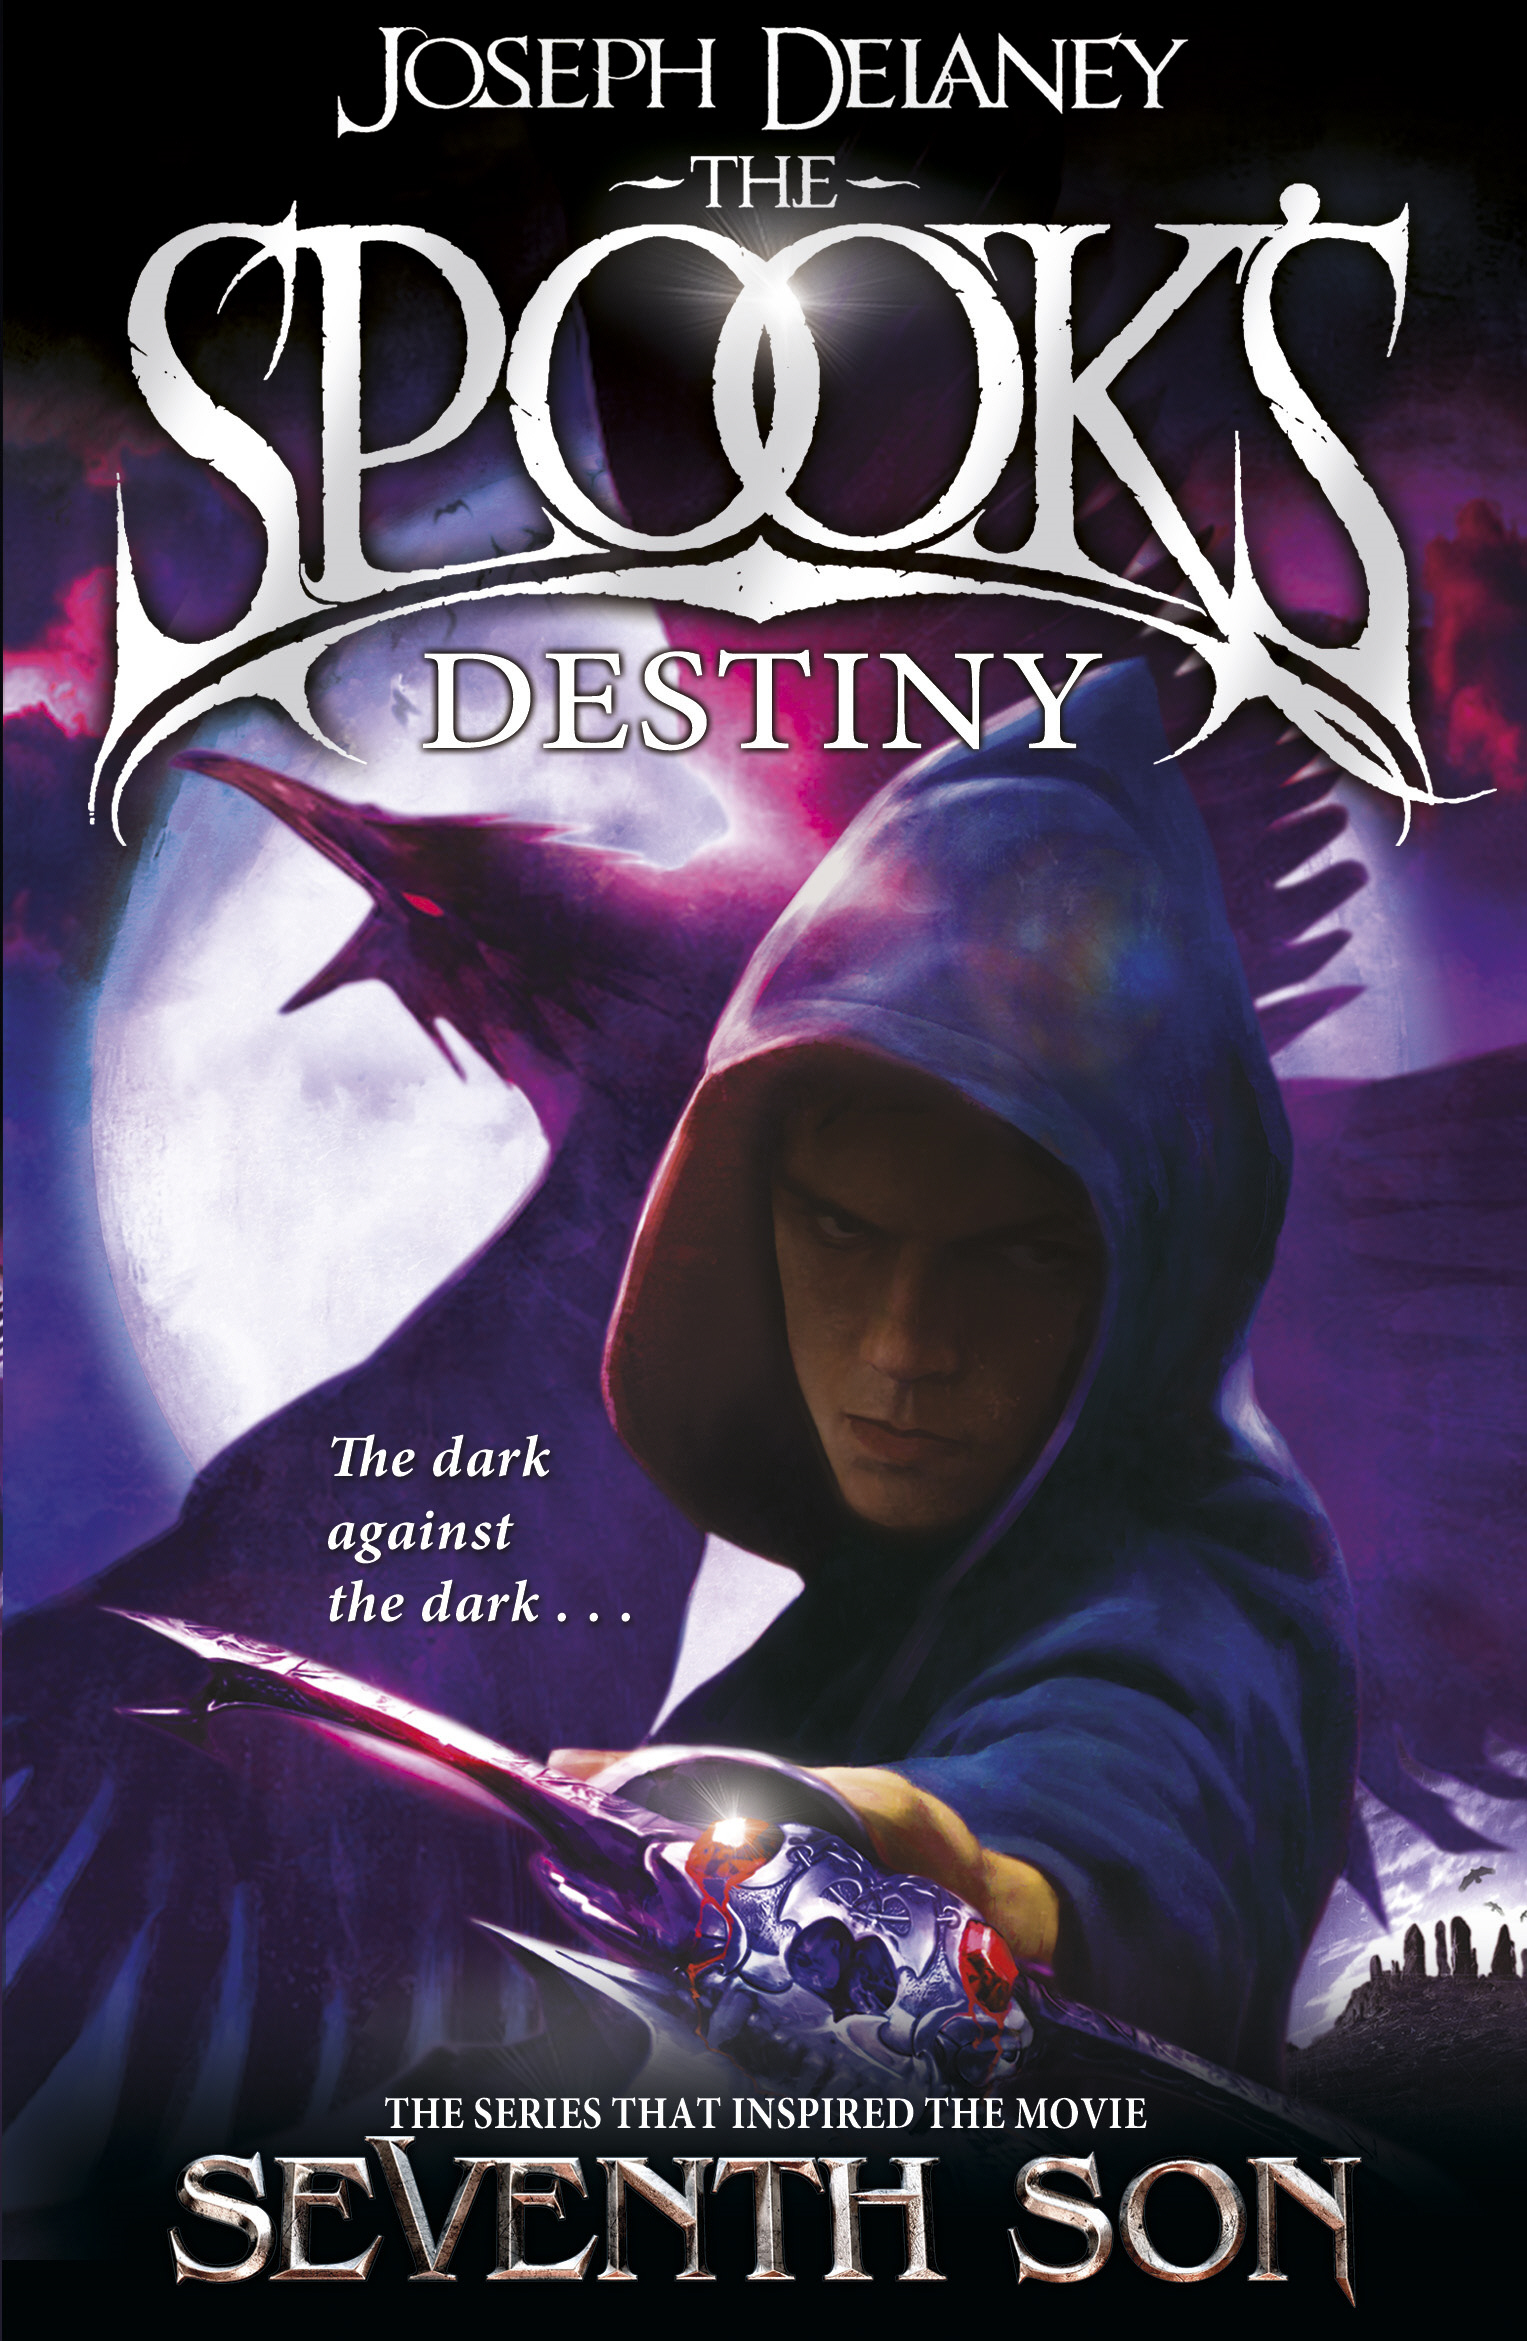 The Spook's Destiny Book 8